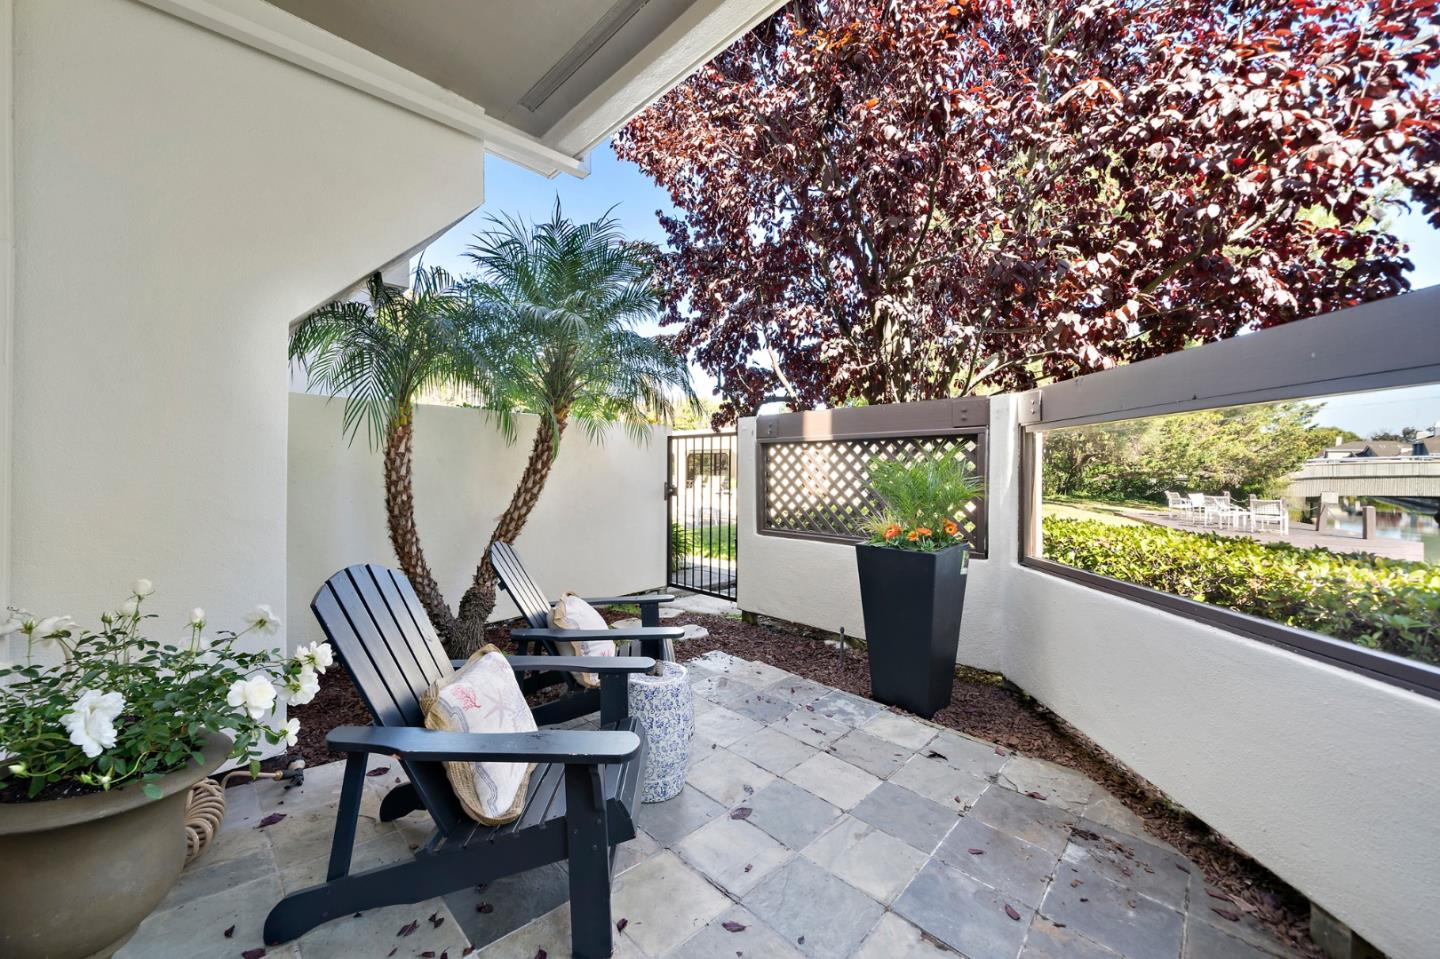 550 Shorebird CIR 2105, Redwood City Waterfront